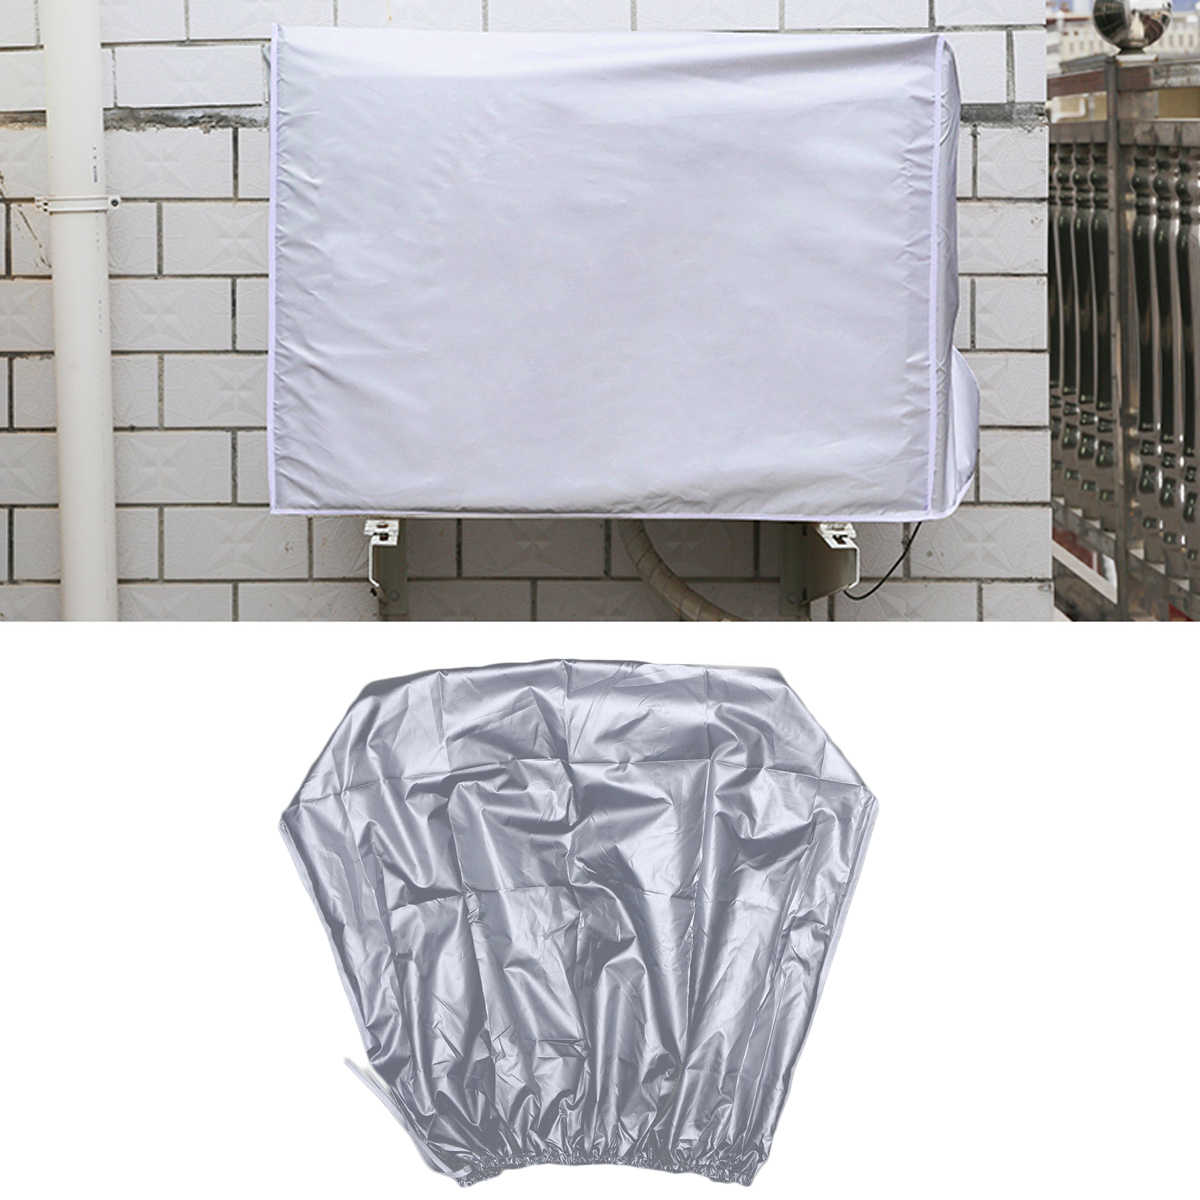 Air Conditioner Cover Waterproof Dustproof Sunscreen Outdoor Air Conditioning Protector Silver Fabric Shield